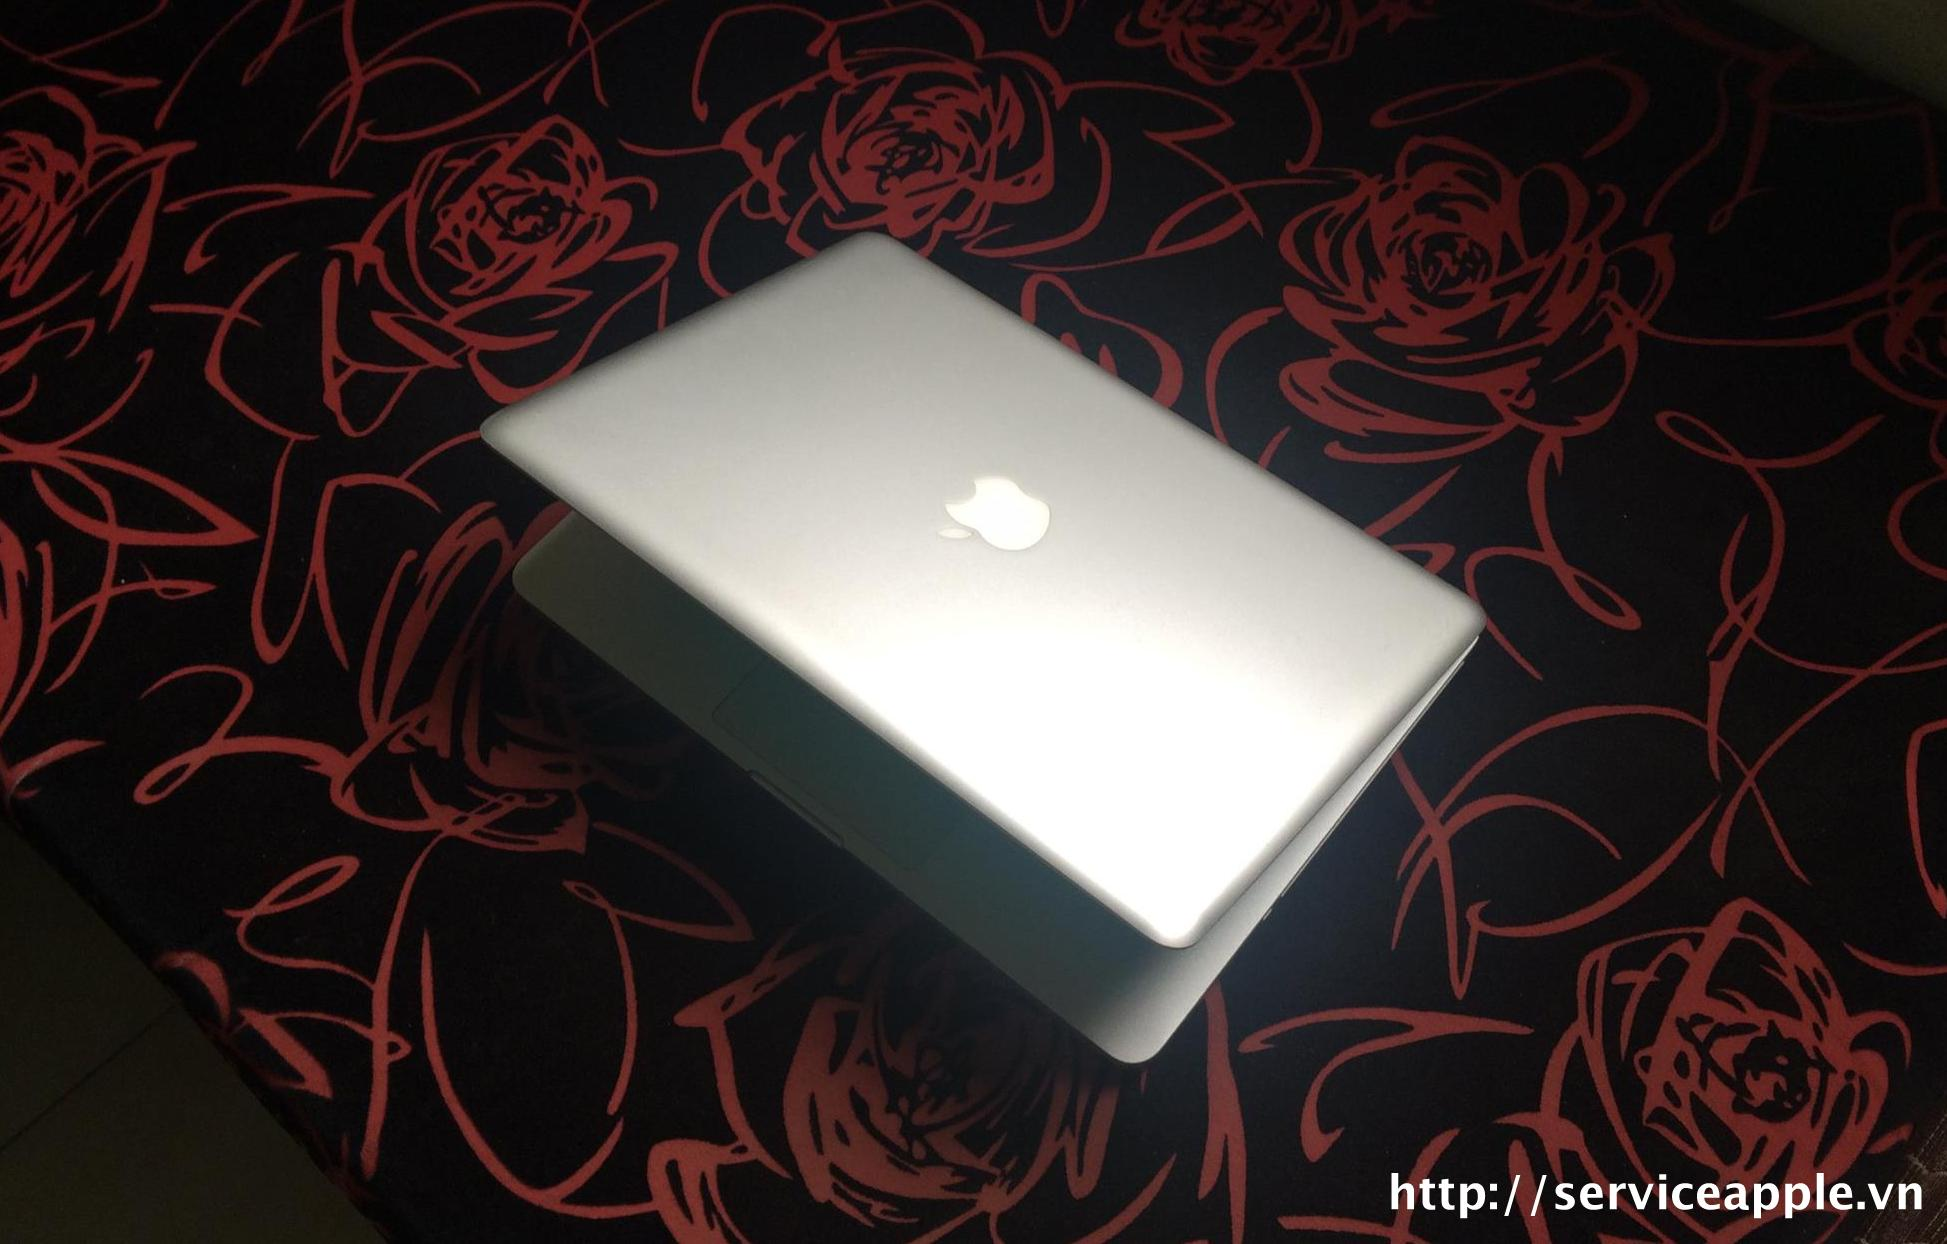 ban macbook pro mc724.jpg